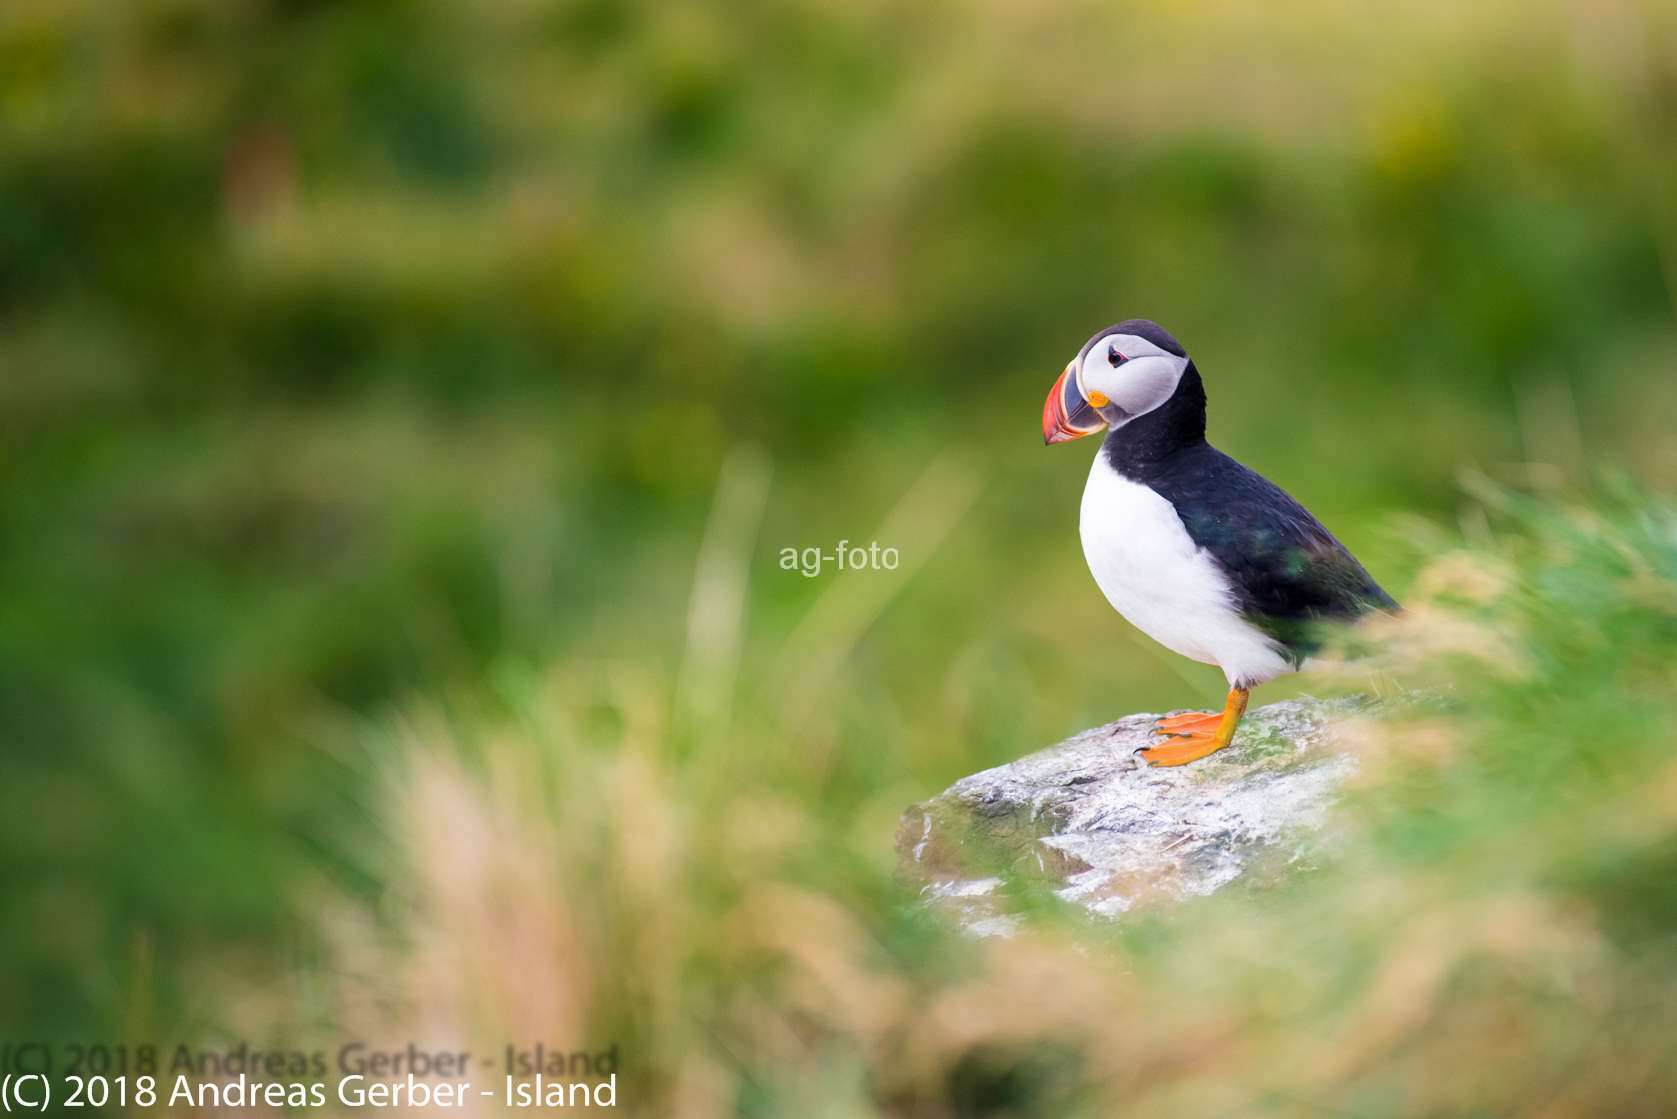 Puffin Island (C) 2019 Andreas Gerber